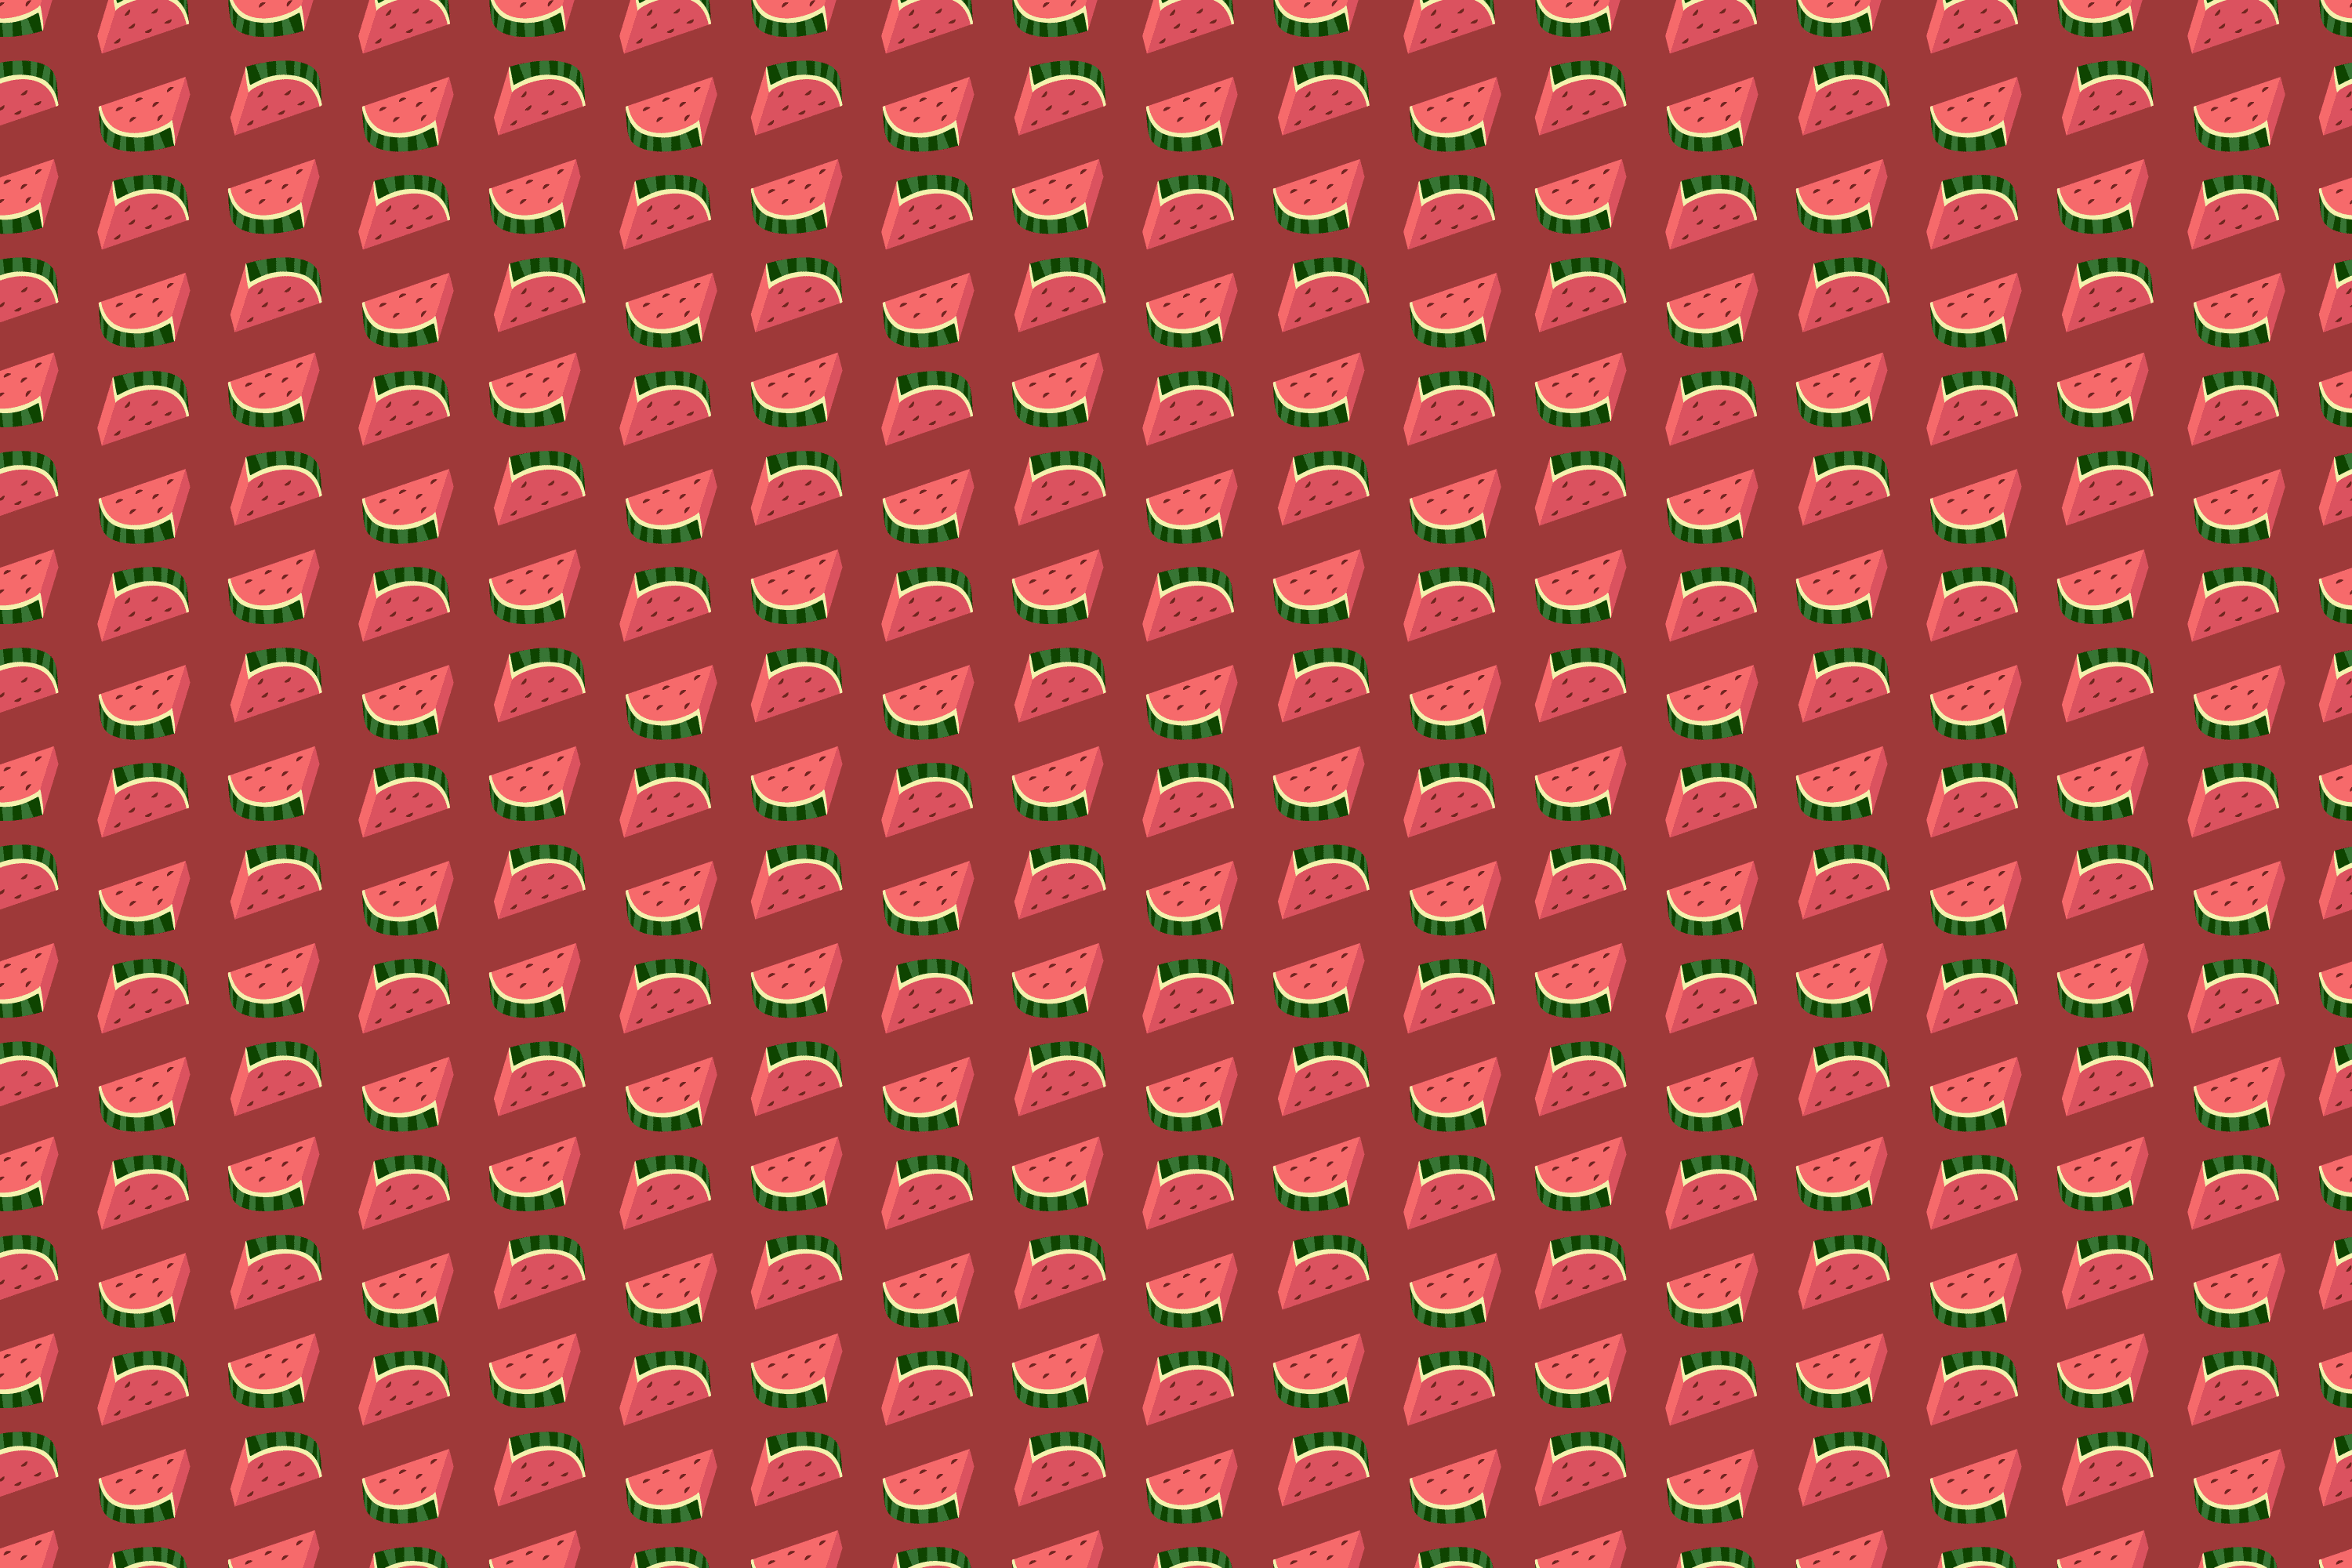 Water melon slices hd wallpaper pattern red